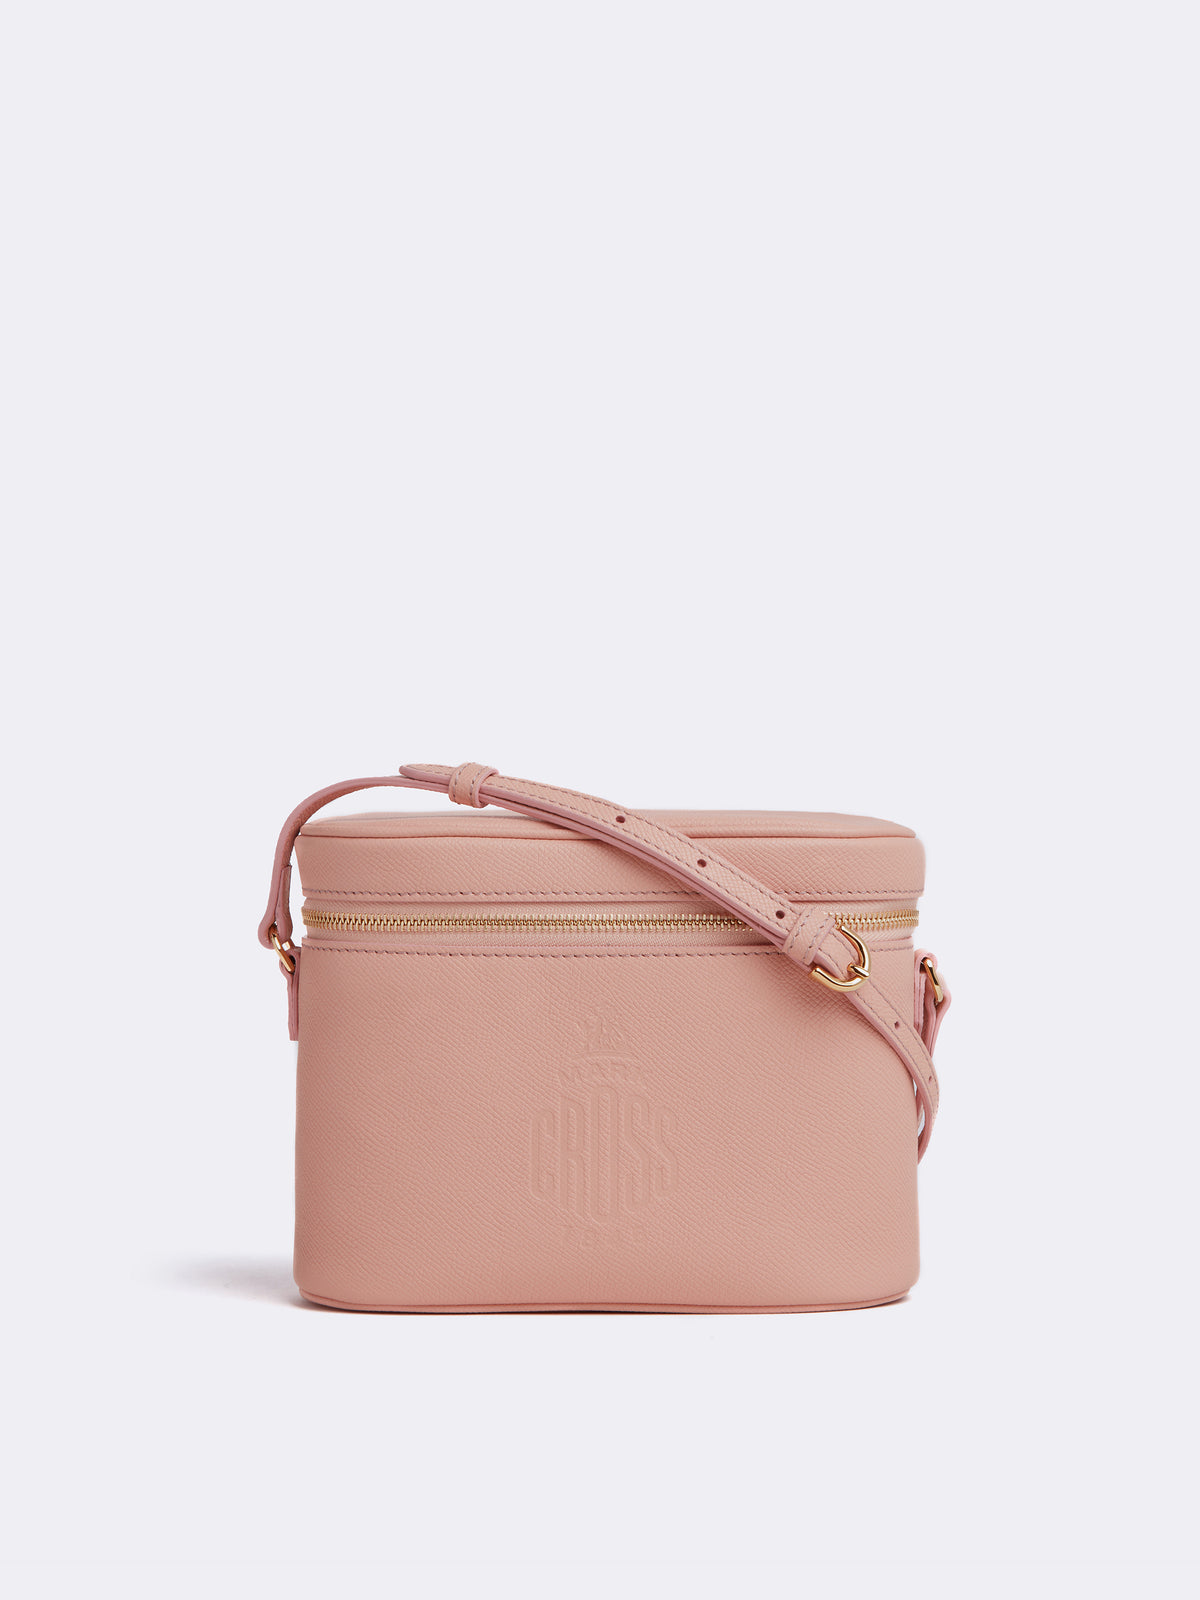 Mark Cross Ginny Leather Crossbody Bag Soft Saffiano Blush Front